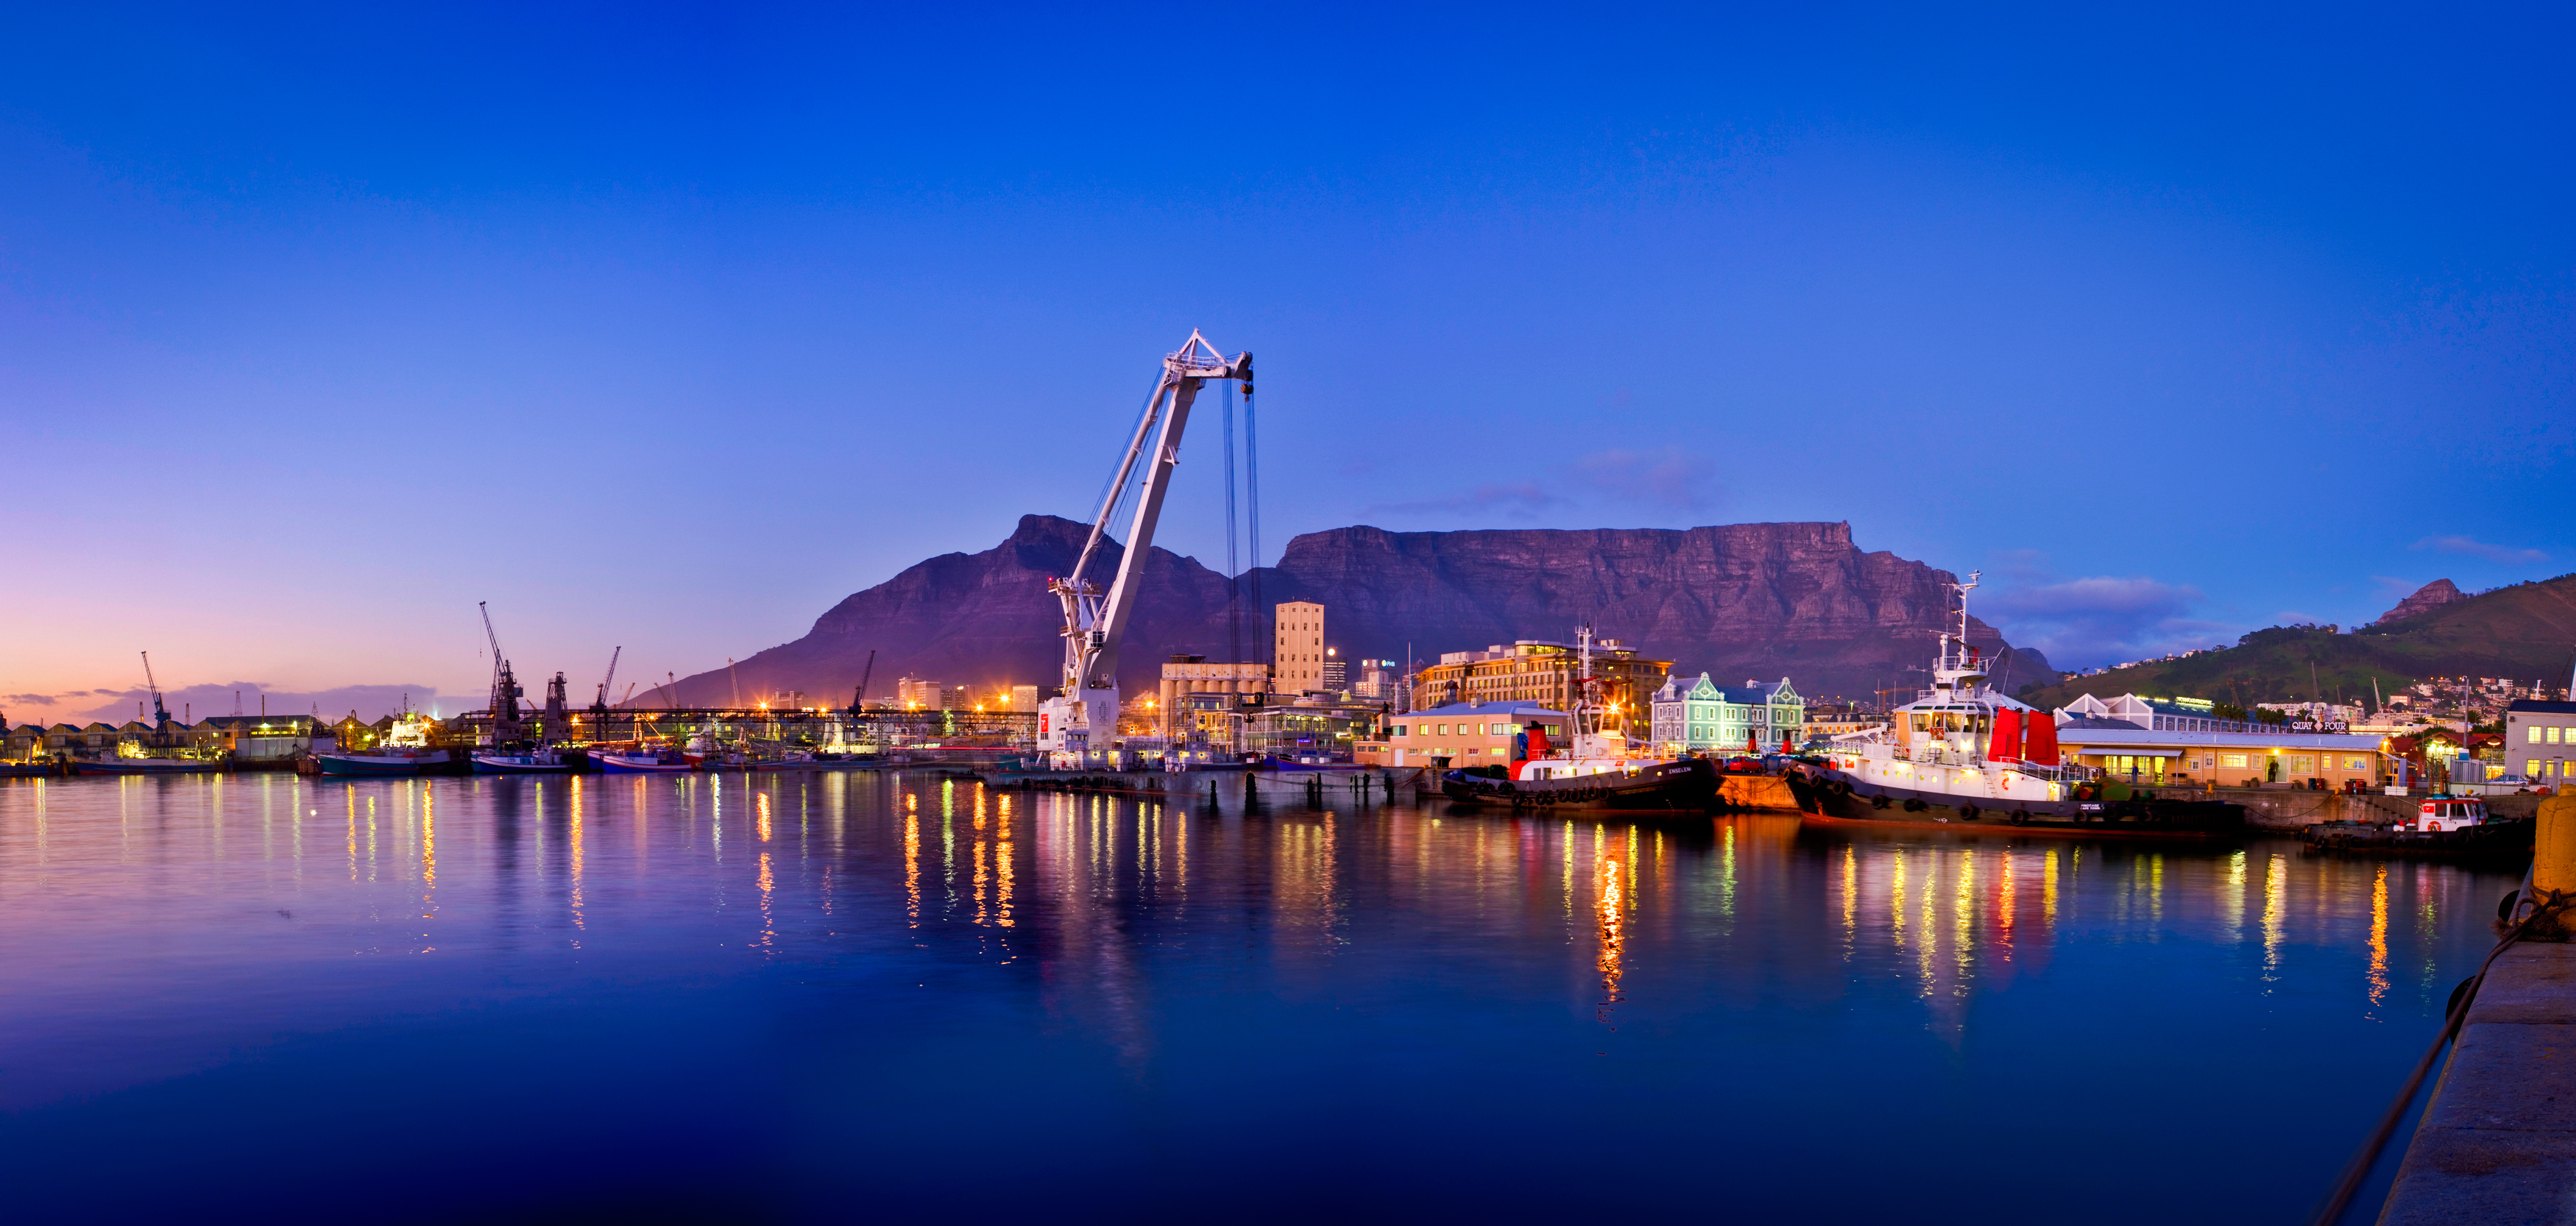 HD wallpapers cape town wallpaper hd